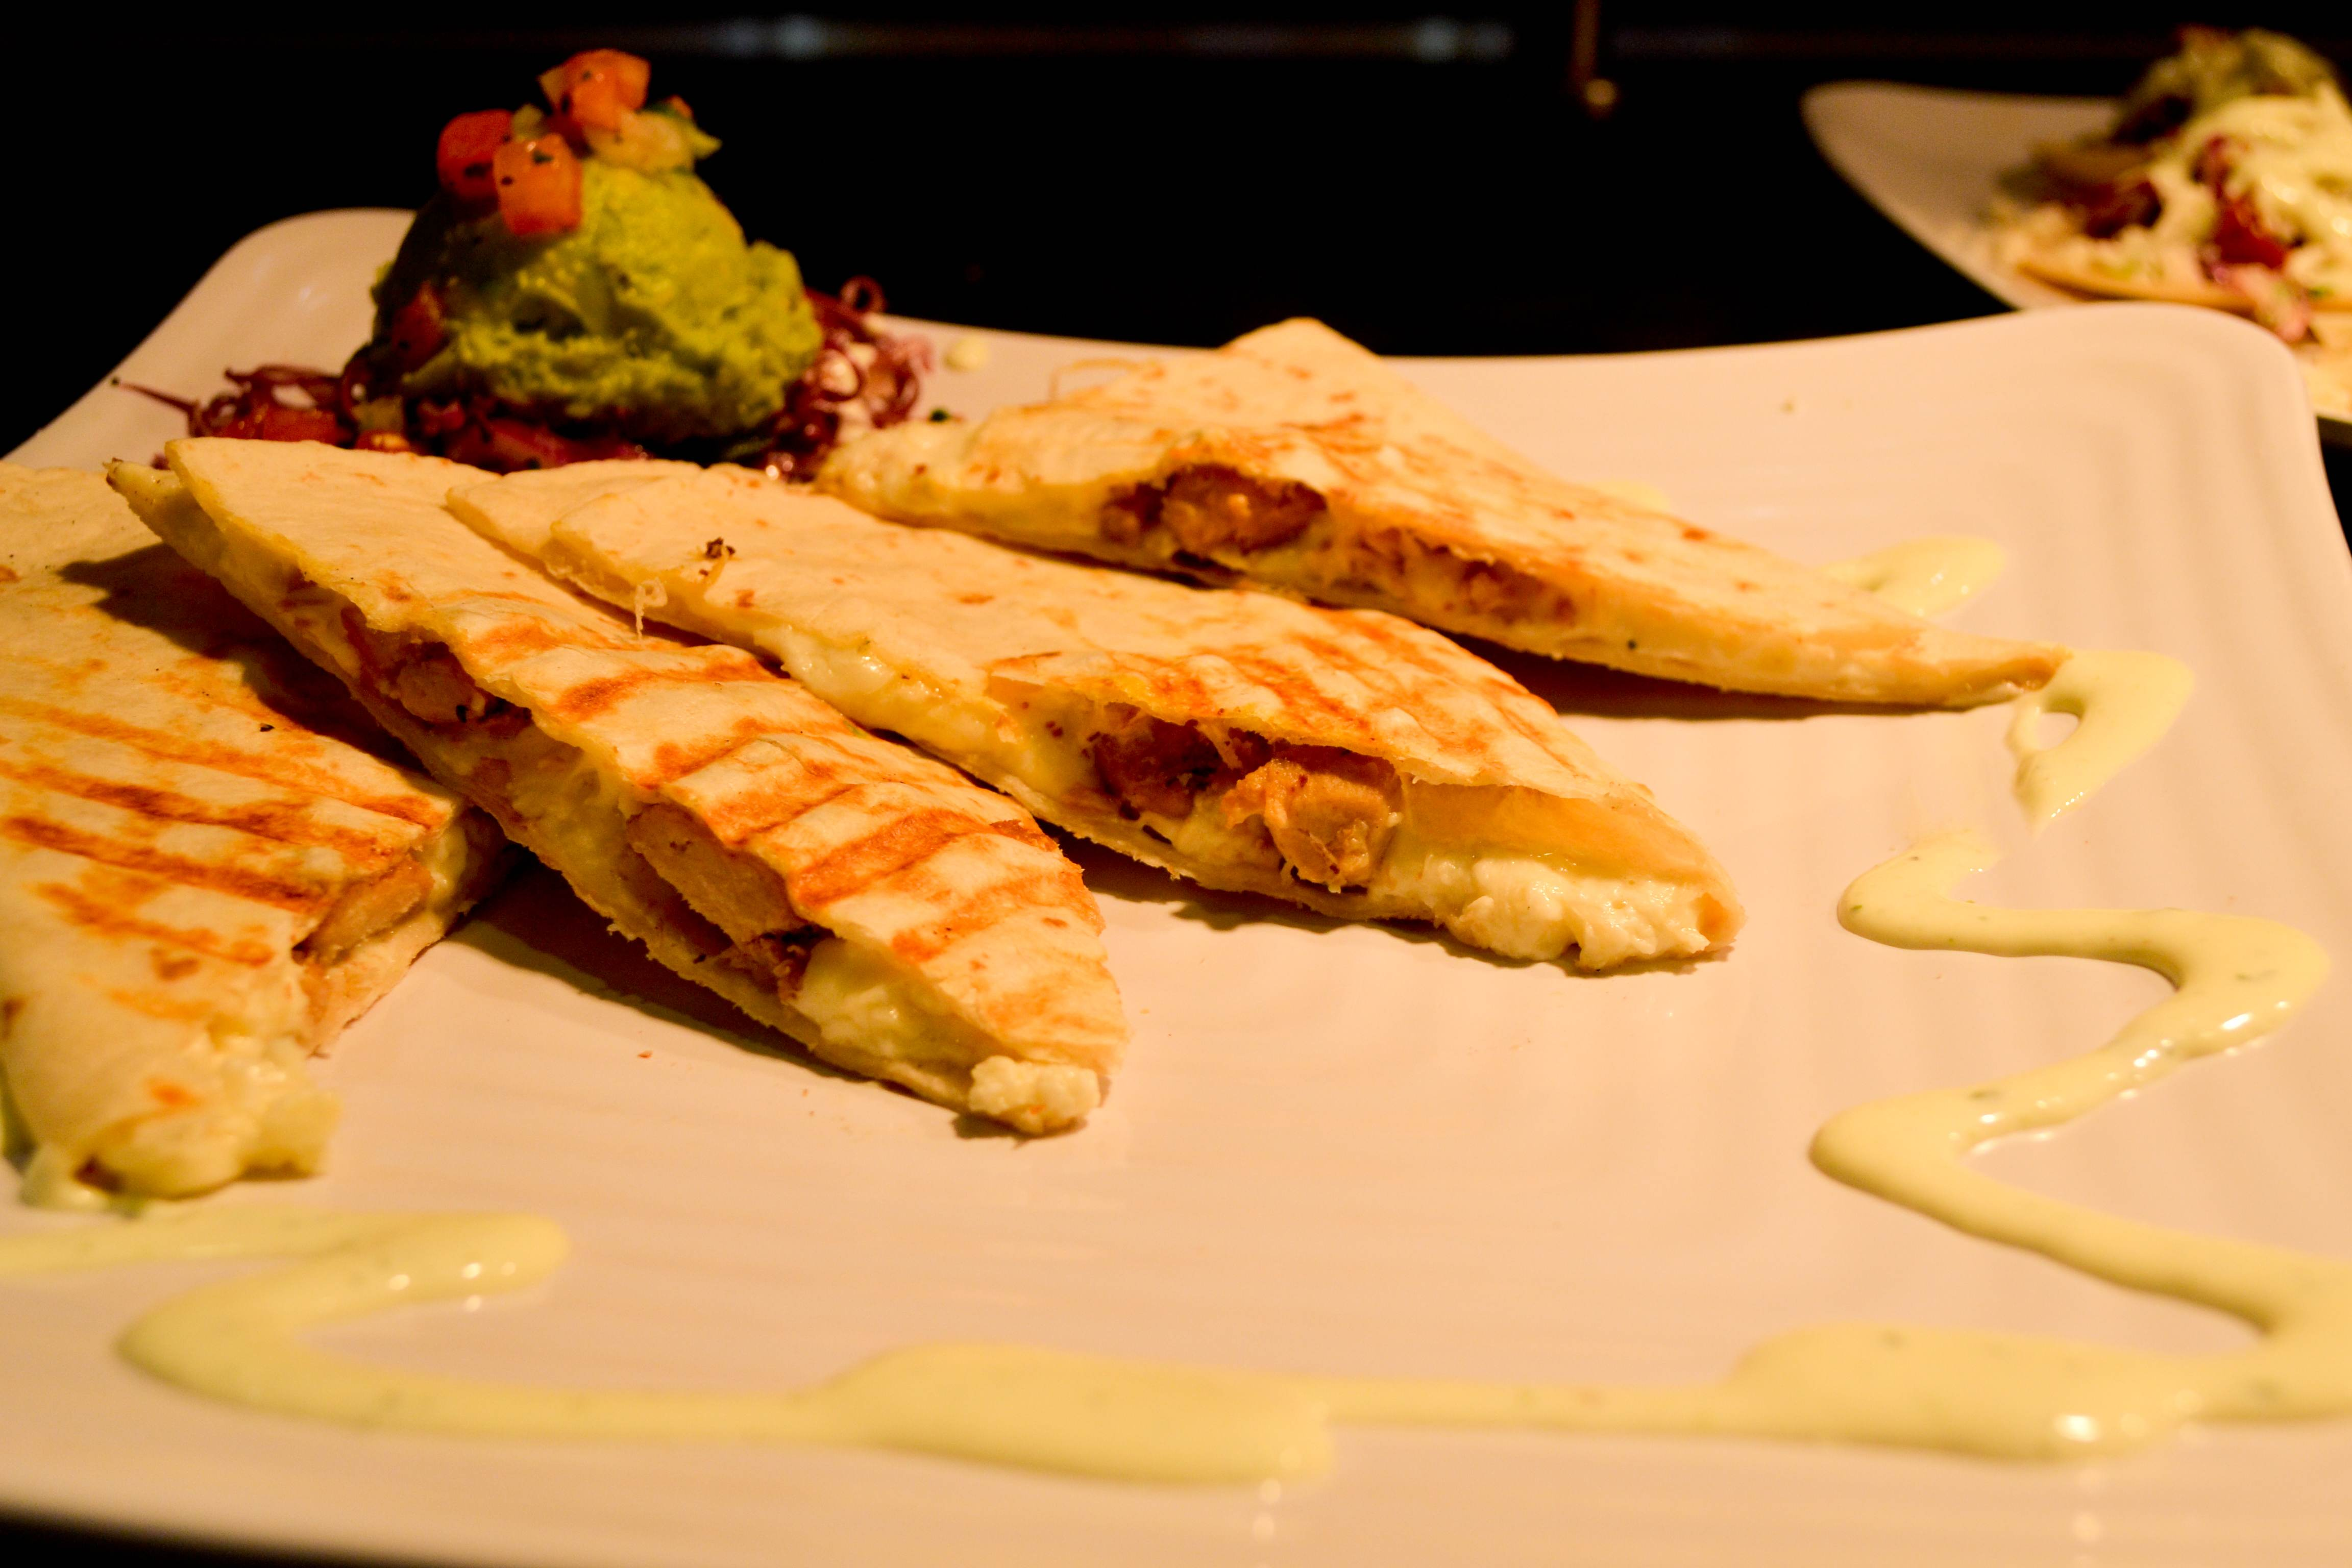 The quesadillas are always a classic choice